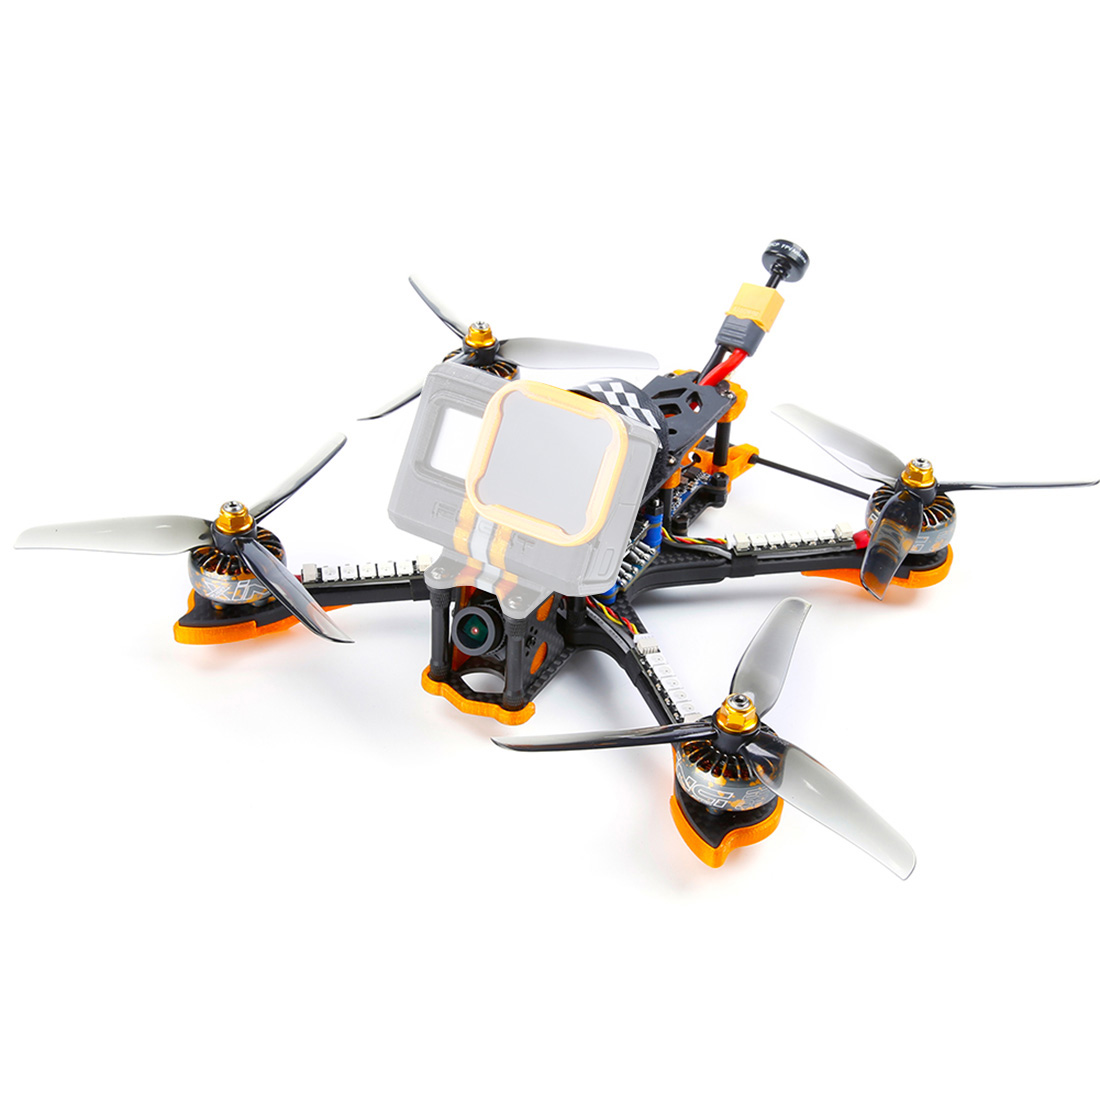 IFlight Cidora avance SL5 5 pouces 215mm plein 3K Fiber de carbone FPV Freestyle Drone w/F7 TwinG Bluetooth 50A 4in1 ESC pile